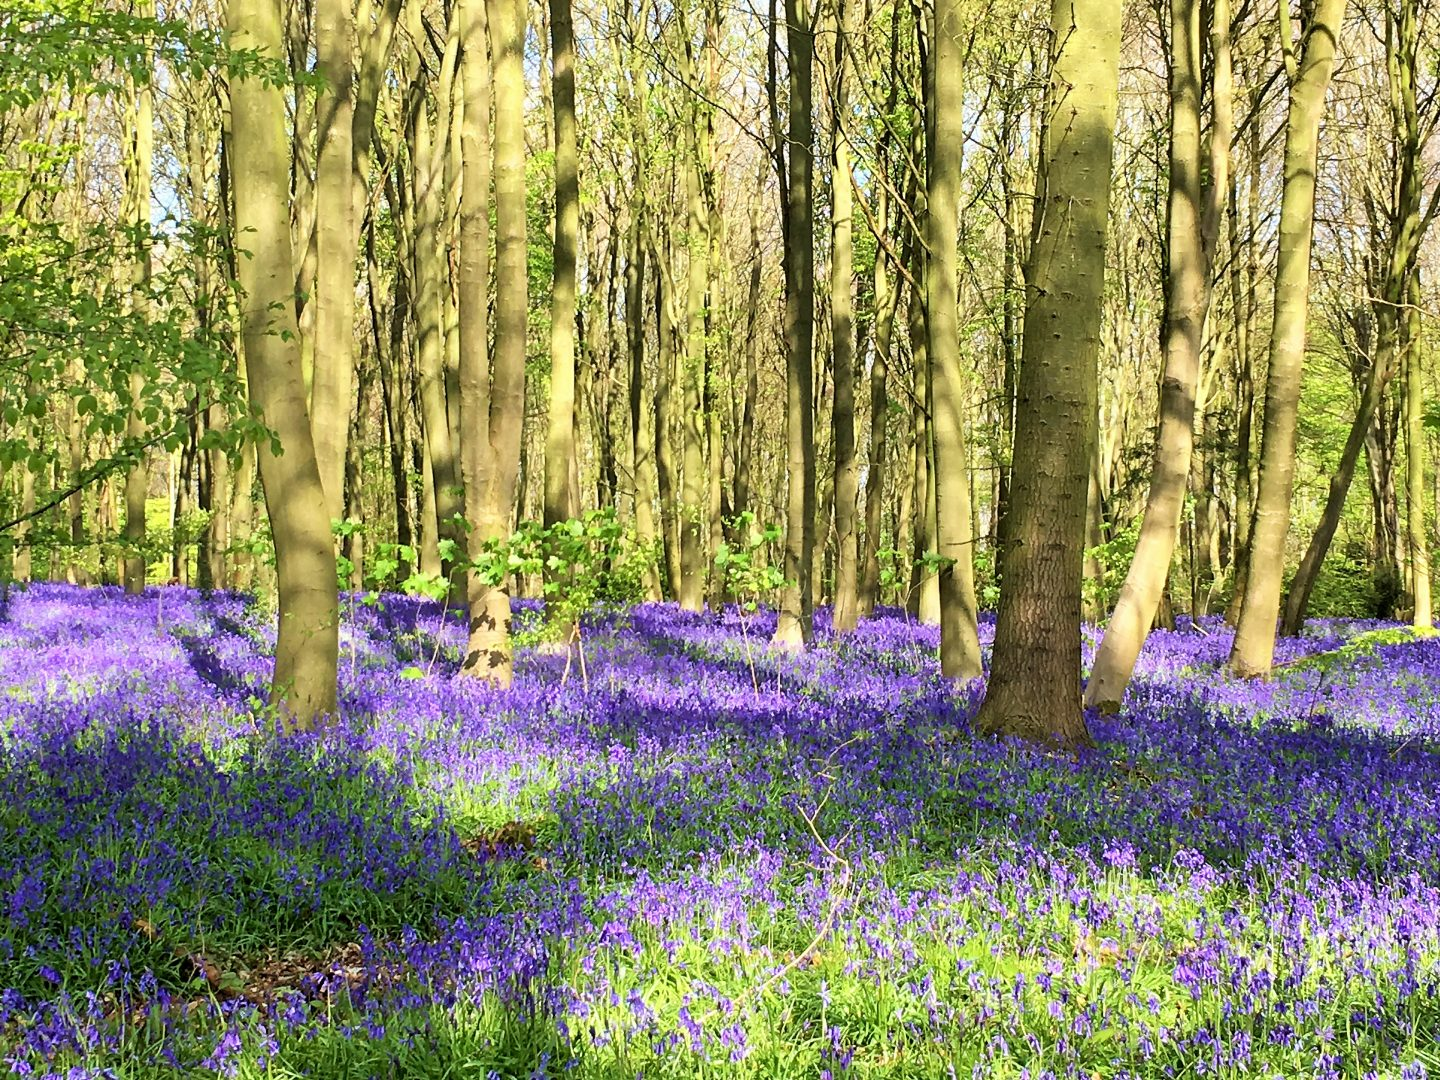 Bluebells at Perrywood Lane woods